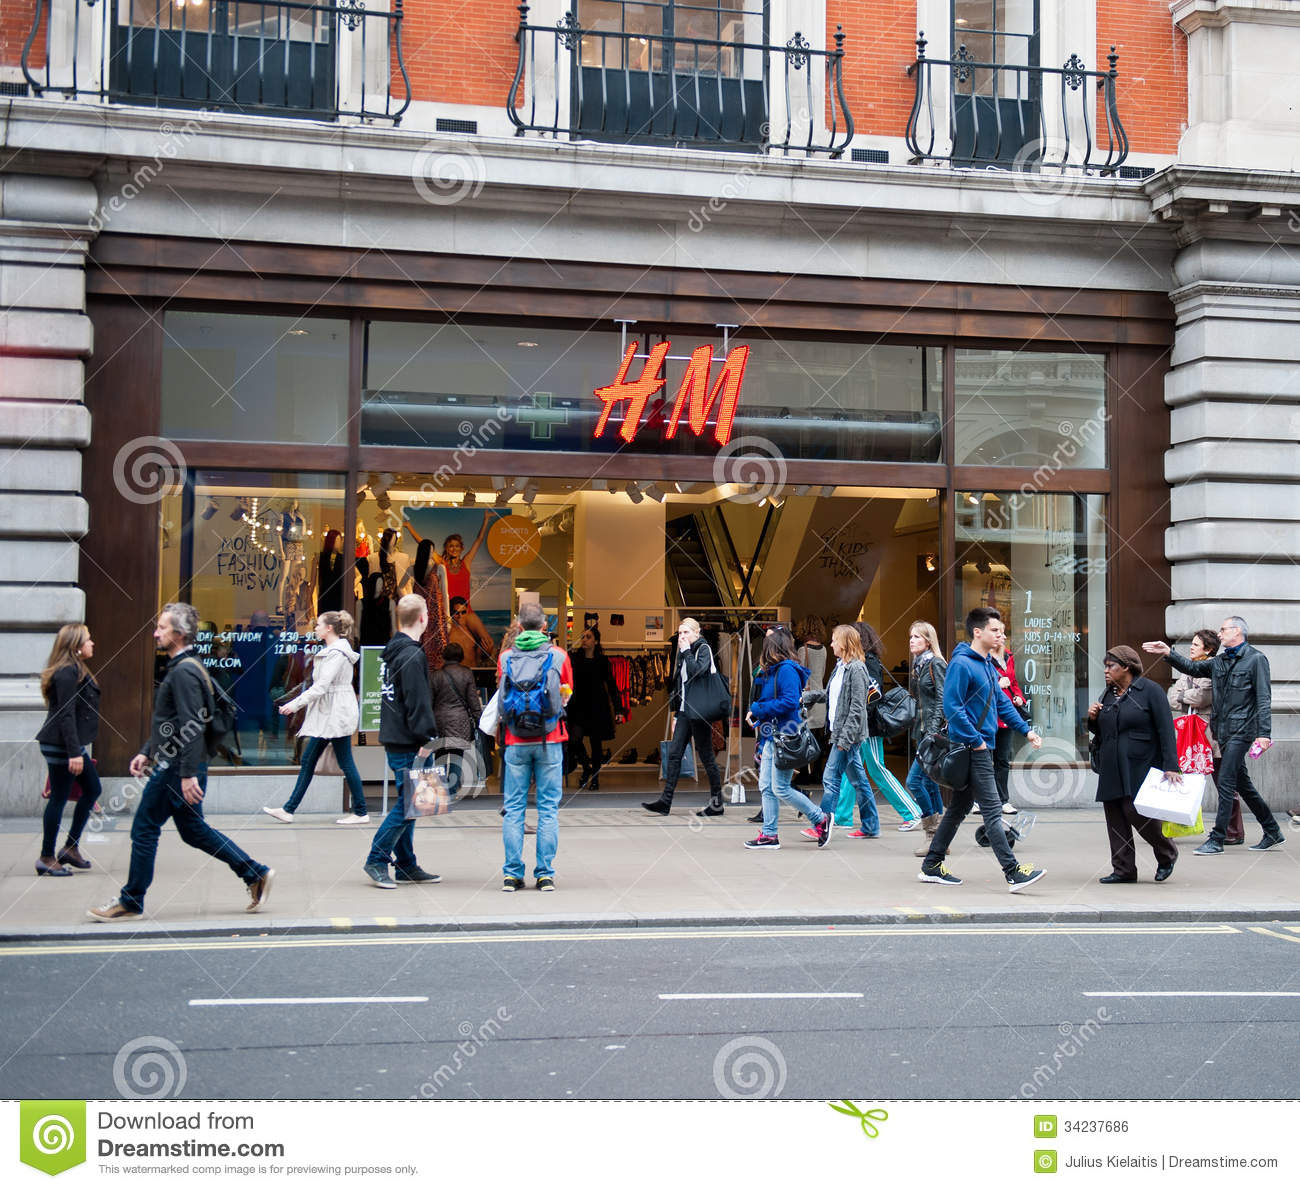 United Kingdom: Clothing Retail Store by Location - Shop for Fashion In The UK London Fashion Shopping Destinations Clothing Retailer United Kingdom Clothing Industry Countries Allsaints Spitalfields: clothing retailer selling men's fashion, women's fashion, and children's fashion.